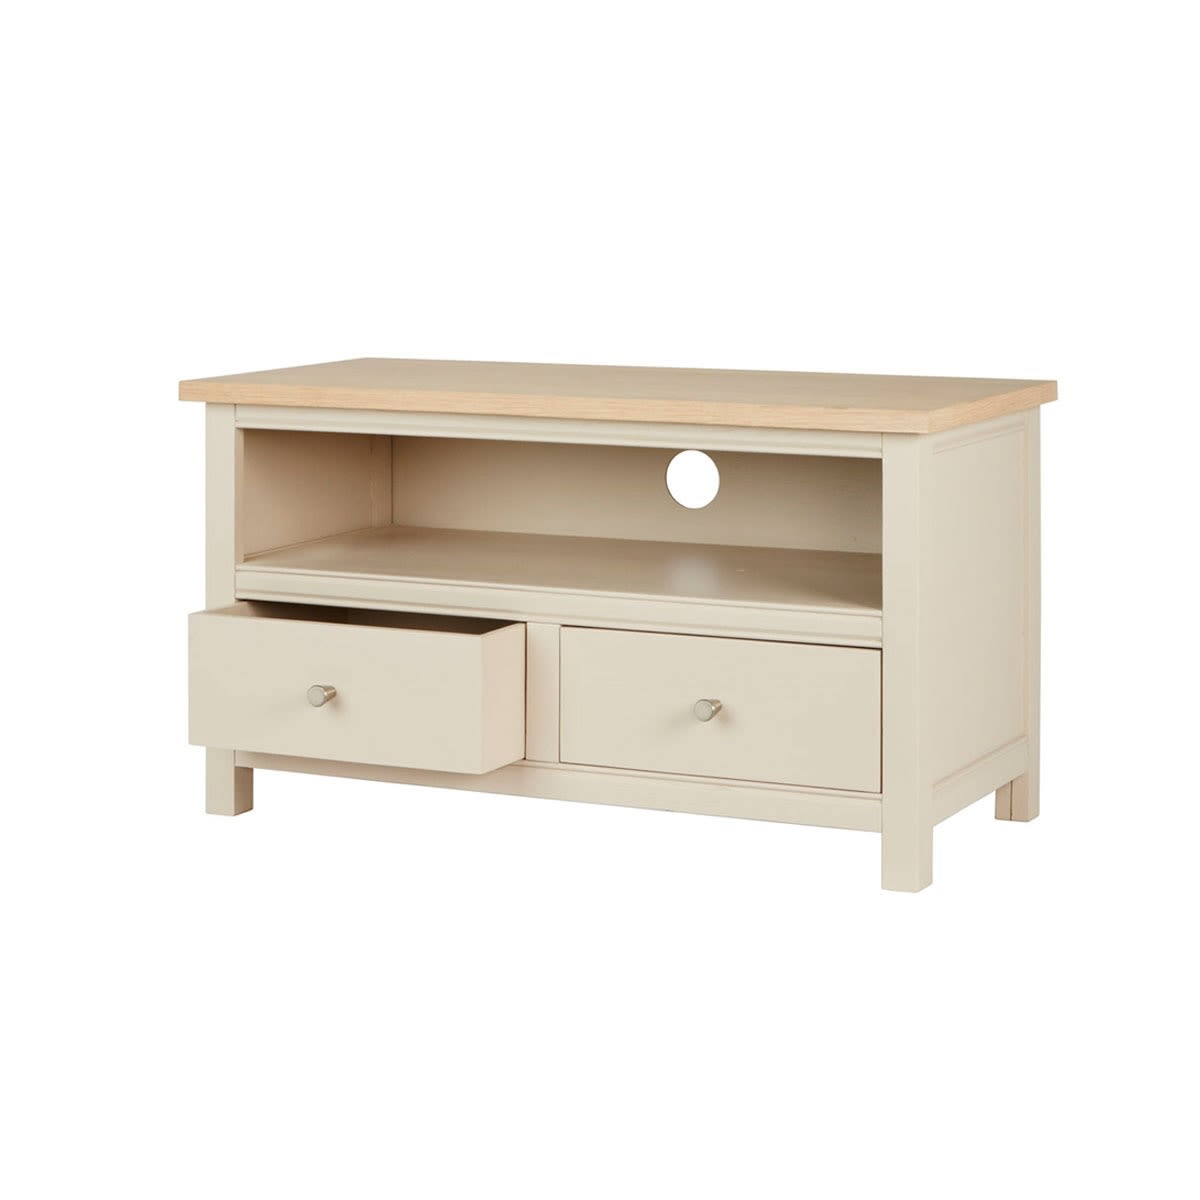 Small Furniture Store: Rushbury Painted Small TV Unit Was £329.00 Now £296.10